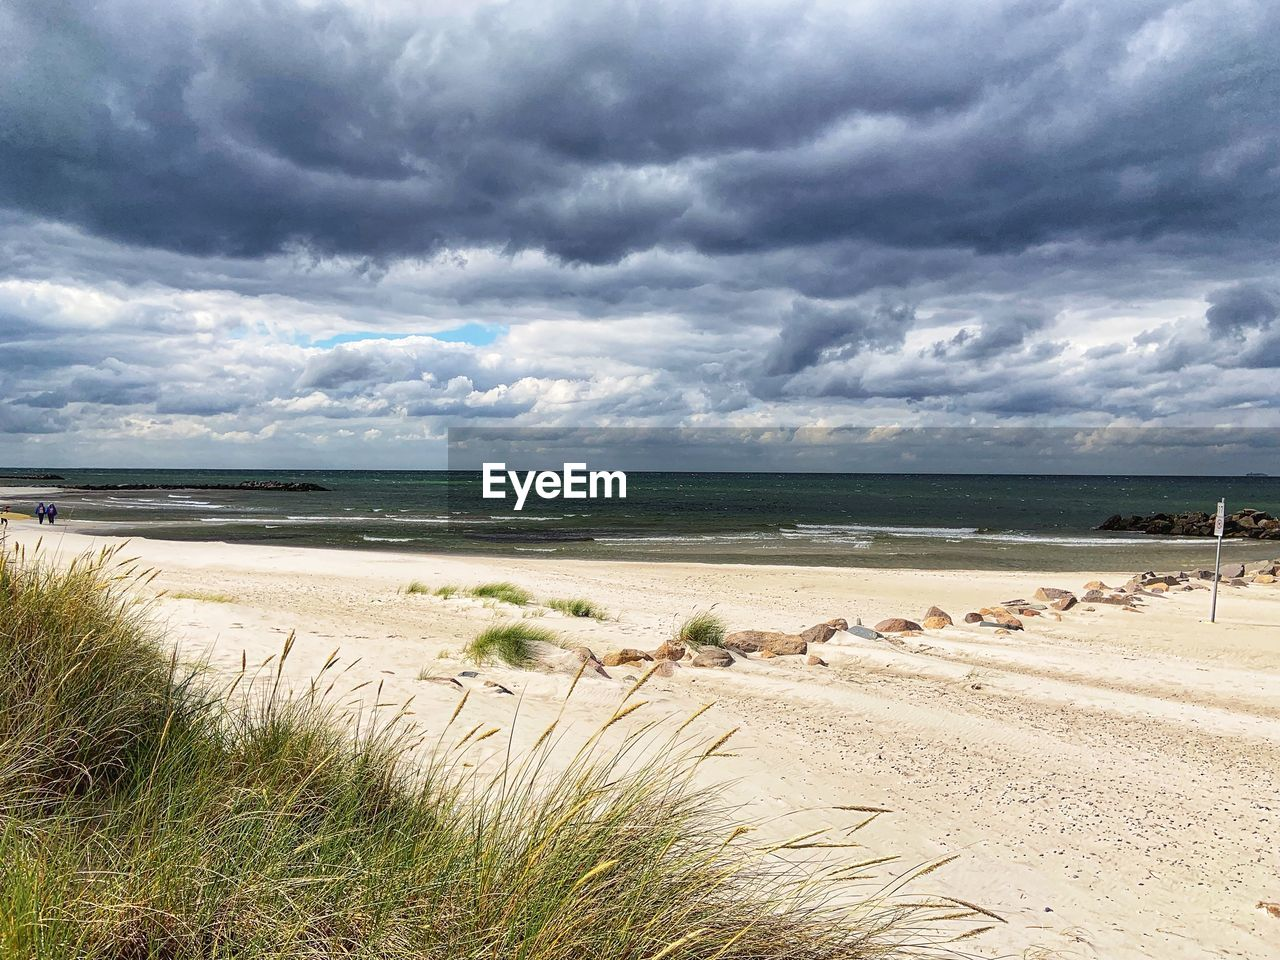 cloud - sky, sky, land, water, beach, beauty in nature, sand, sea, scenics - nature, nature, tranquility, plant, tranquil scene, grass, day, no people, overcast, horizon over water, marram grass